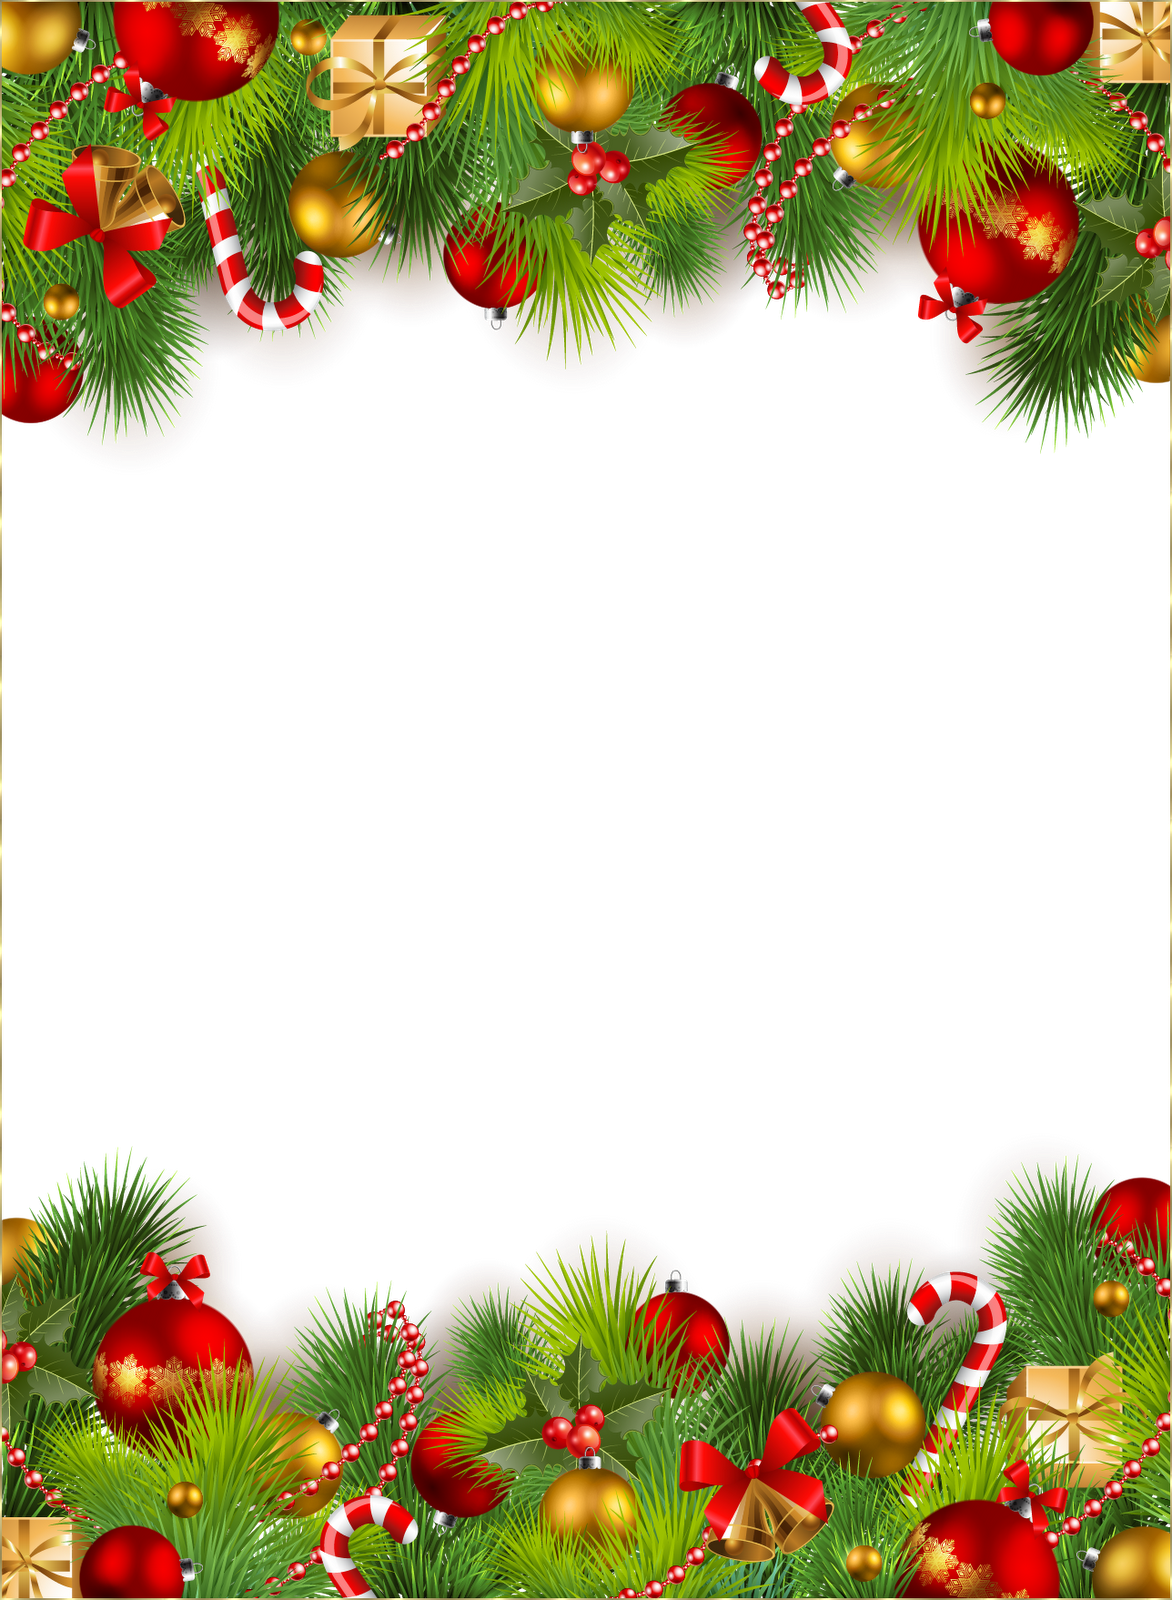 Image result for island christmas greetingsframe images | Borders ...